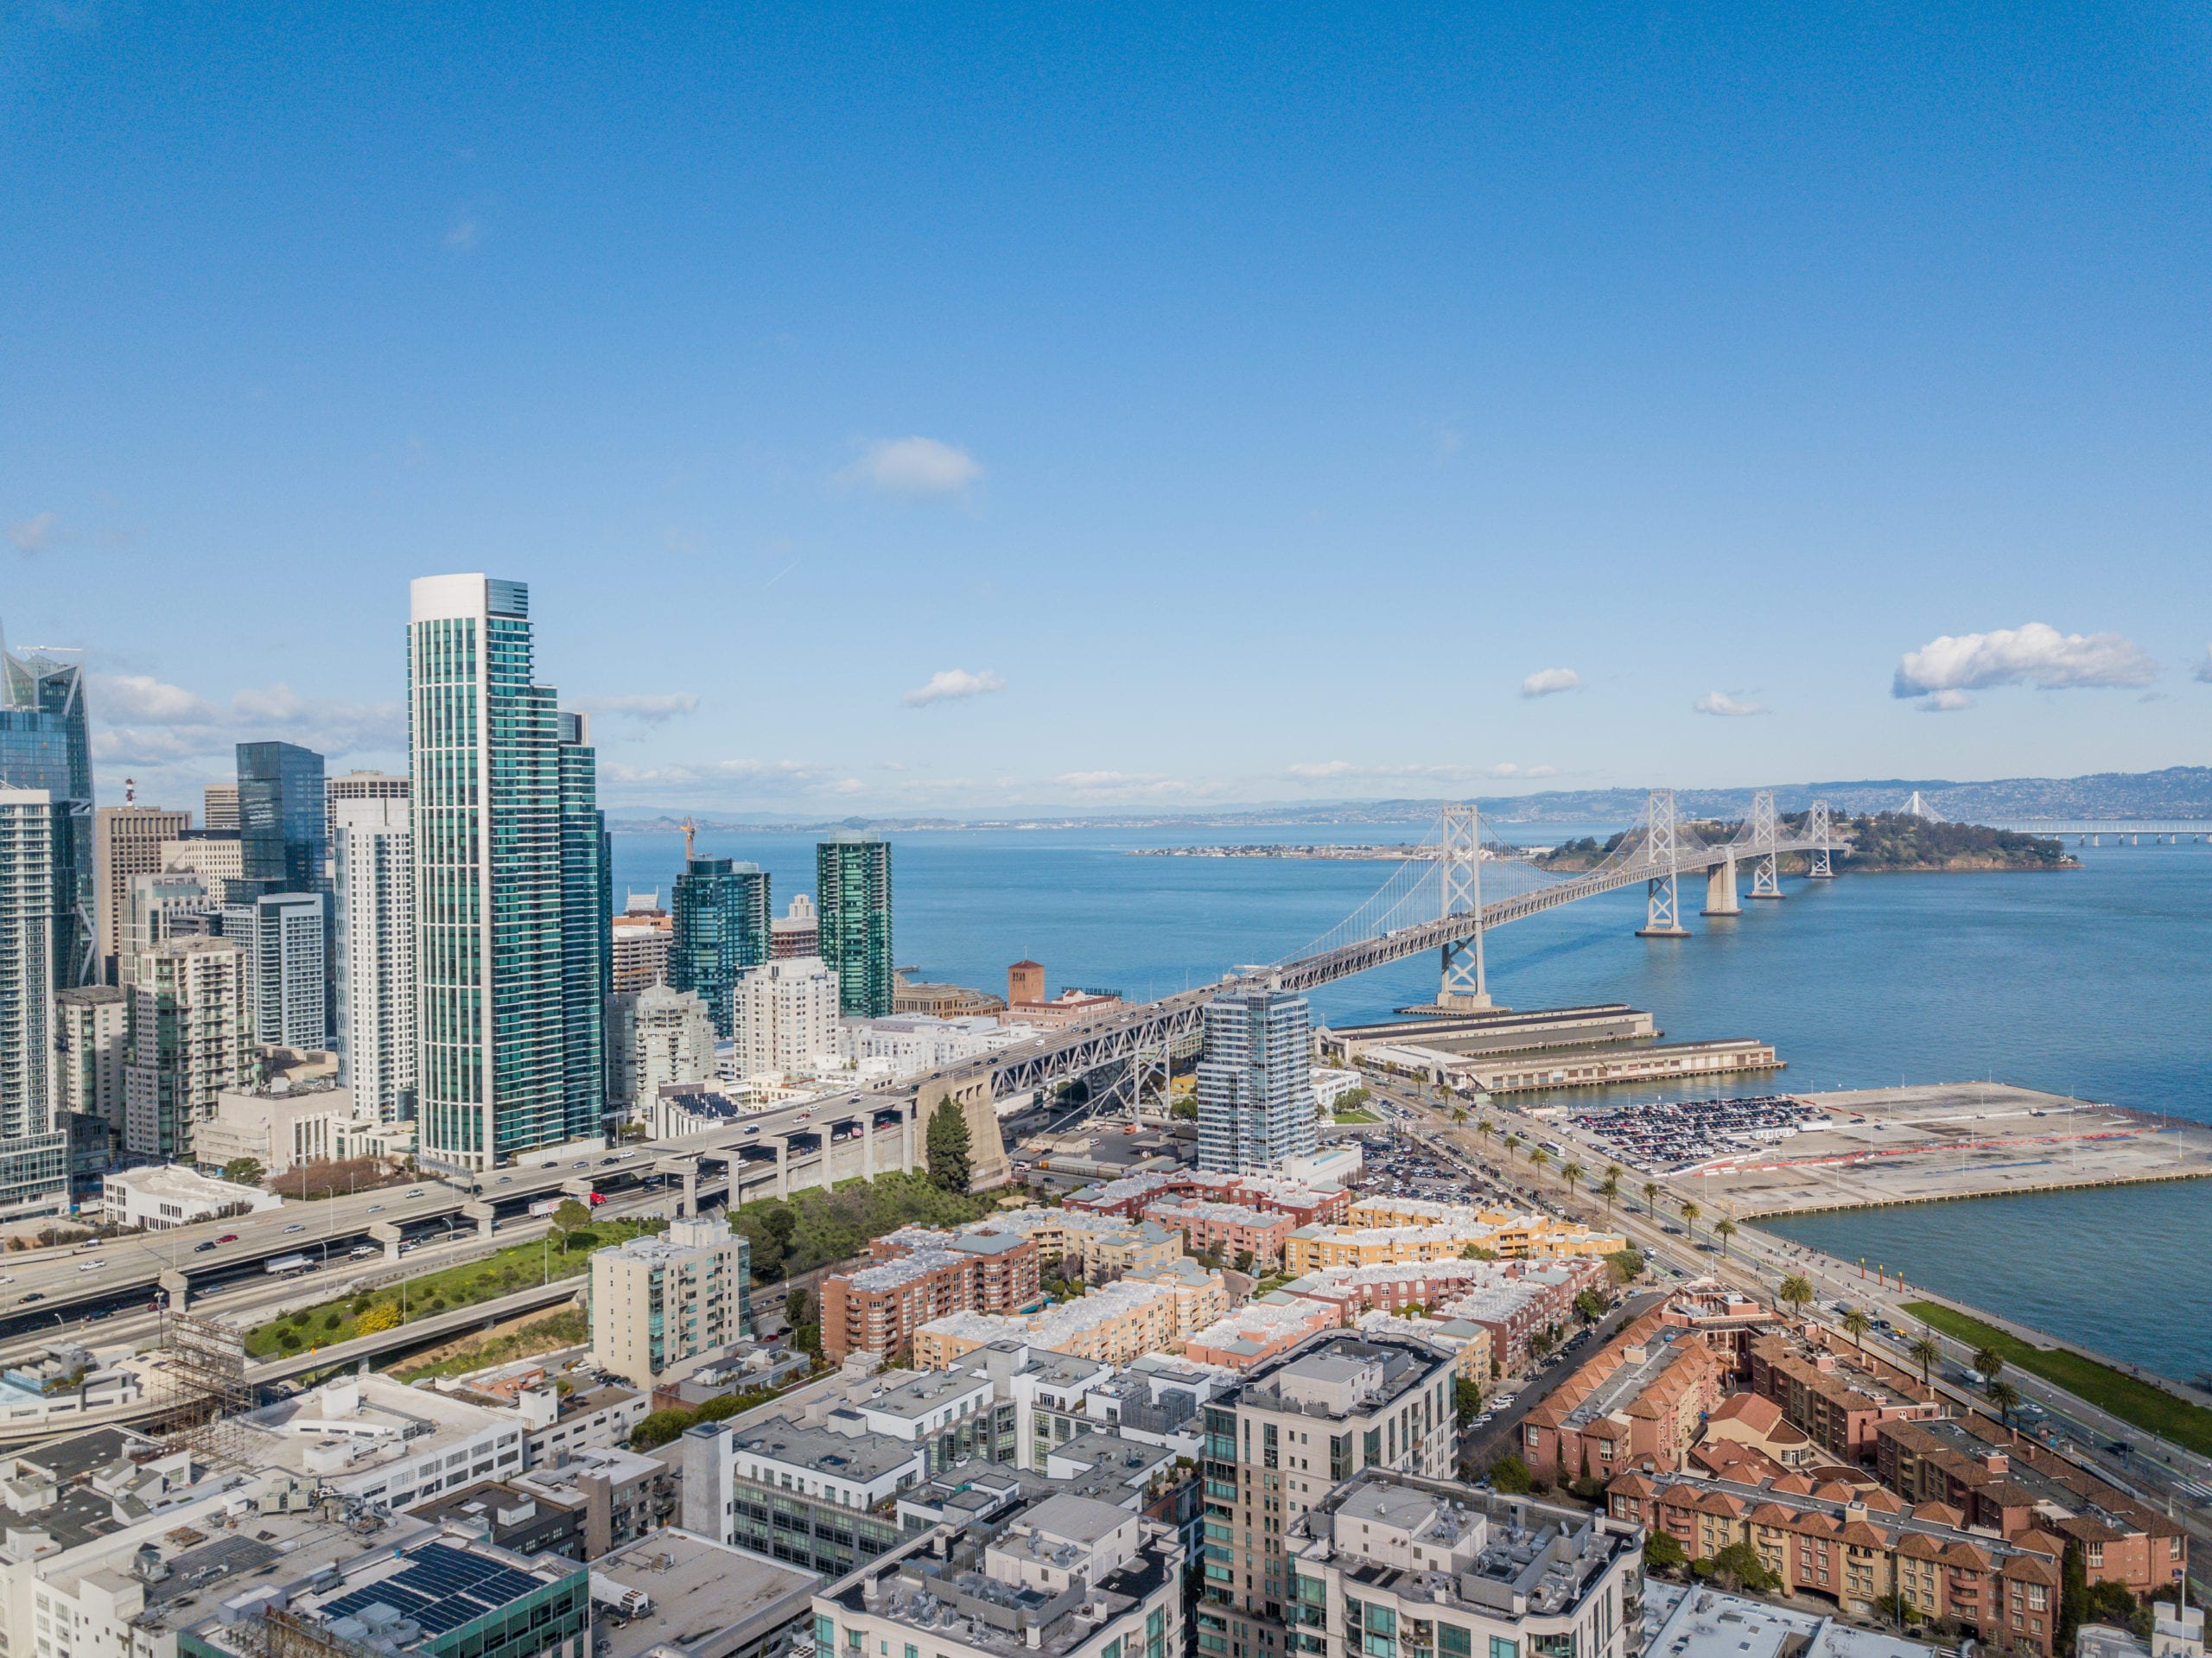 view of downtown san francisco and oakland bay bridge from over bayside village apartments